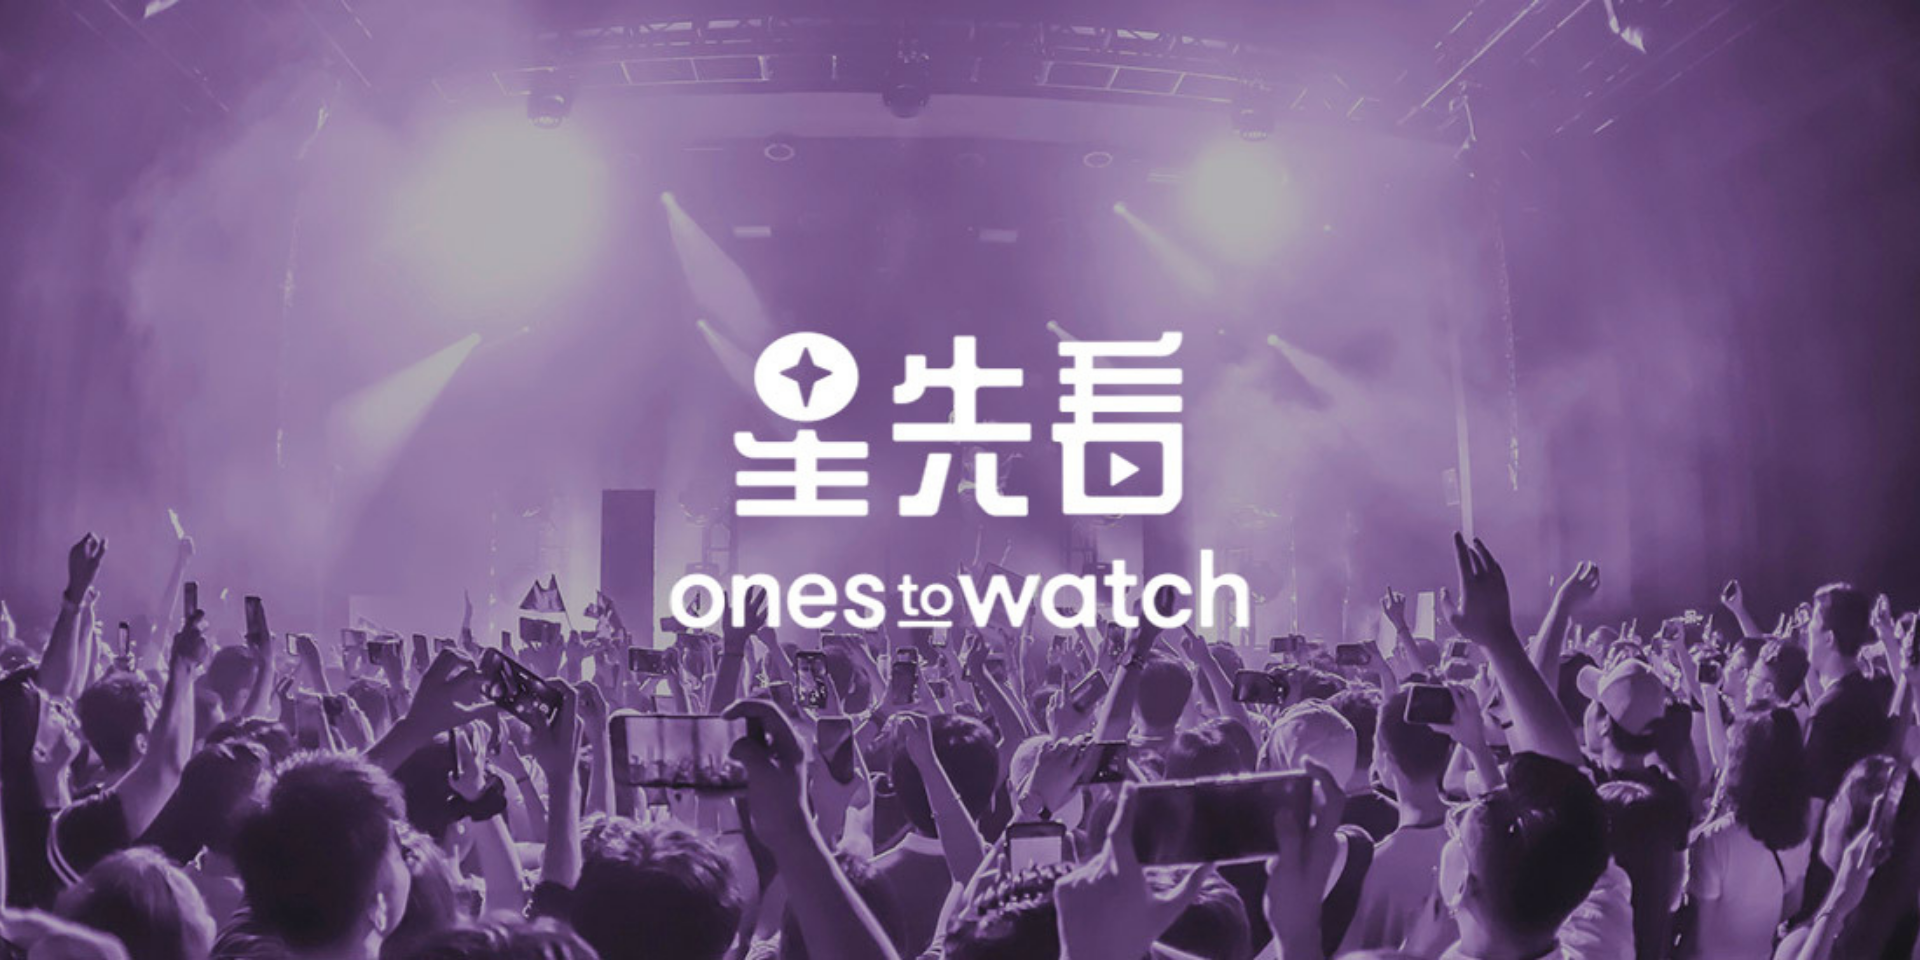 Live Nation to showcase rising talents in China on new online music platform 'Ones To Watch'